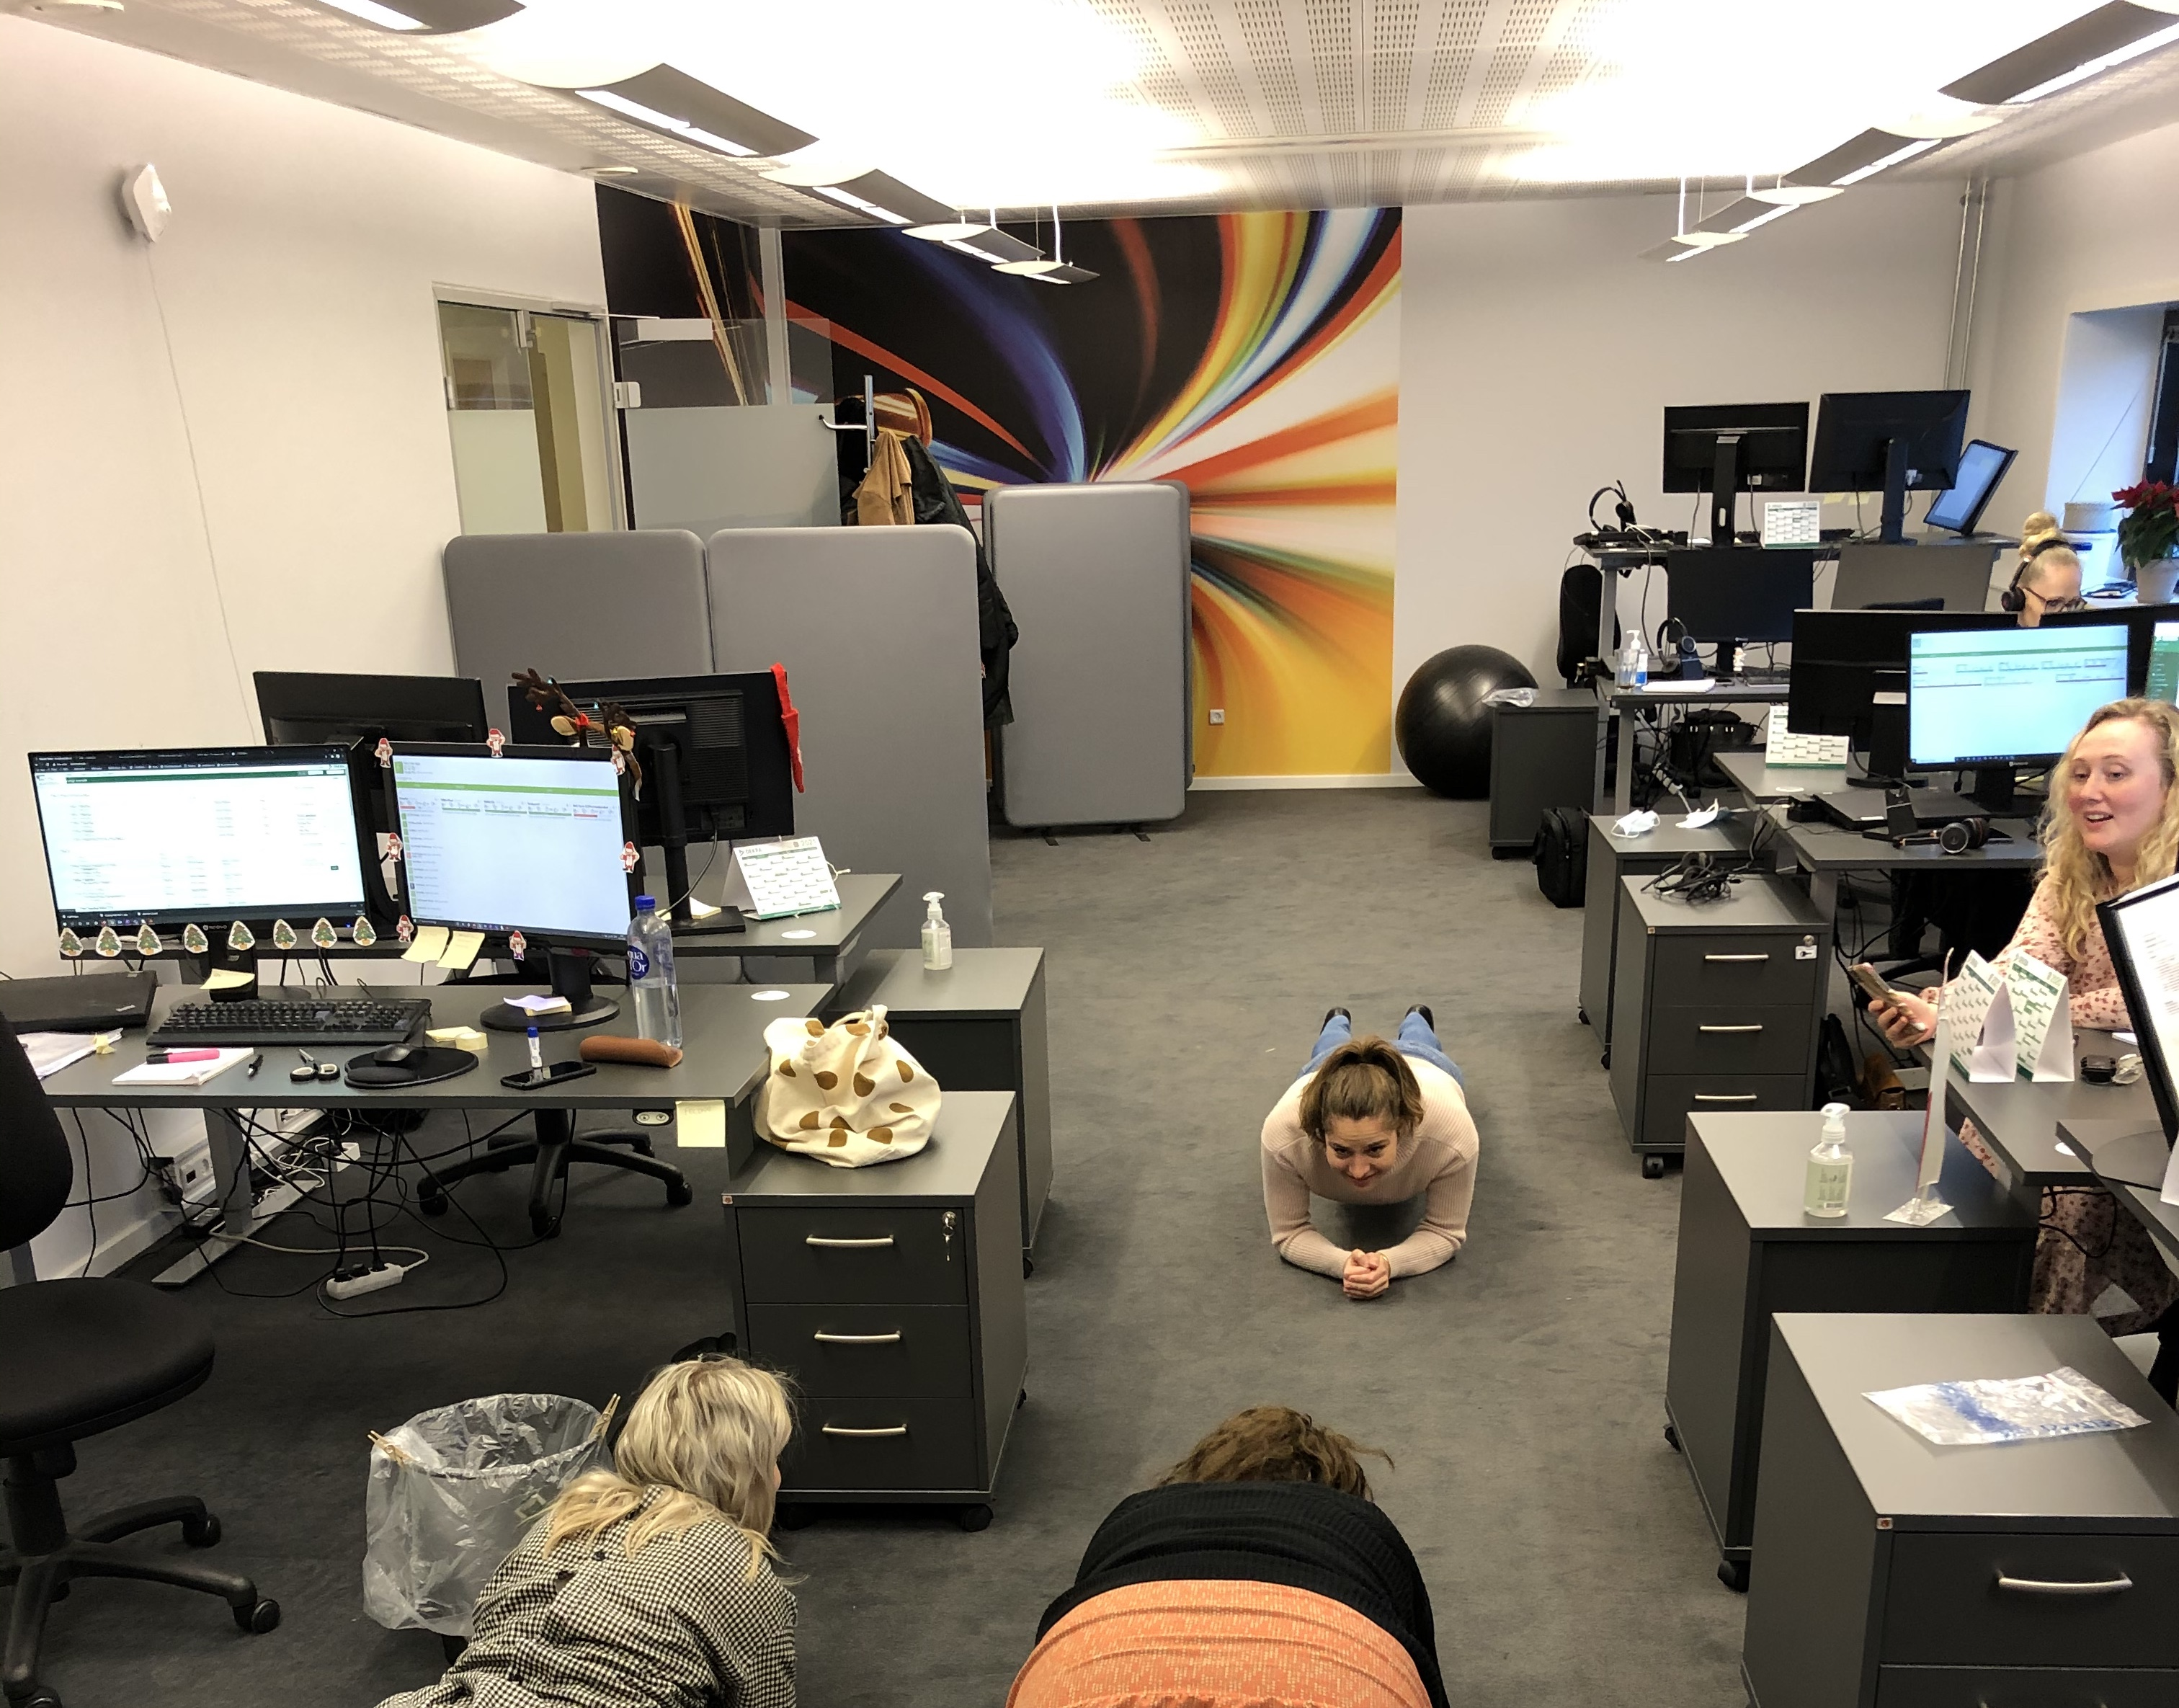 Three women in an office doing the plank